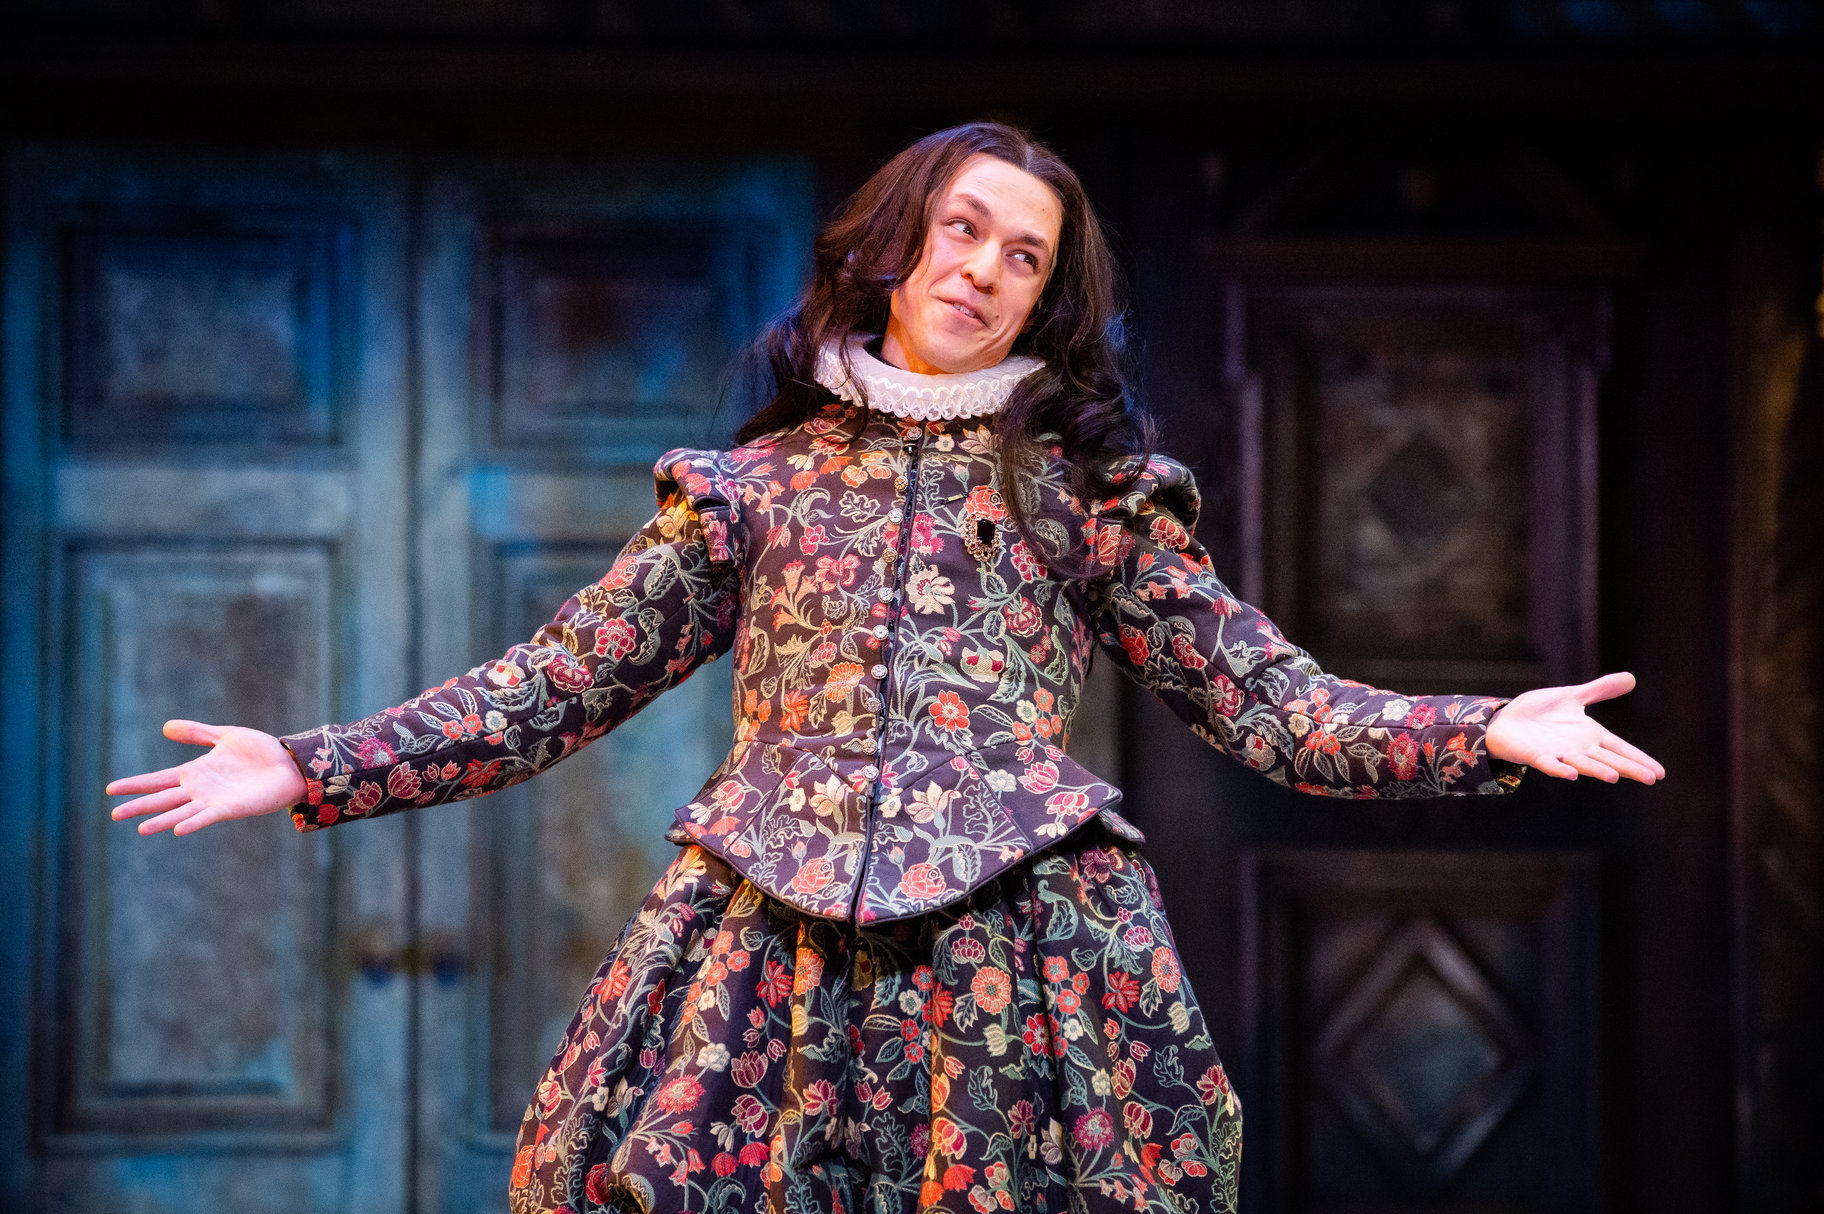 James Cooney as Bianca in the 2019 production of The Taming of The Shrew